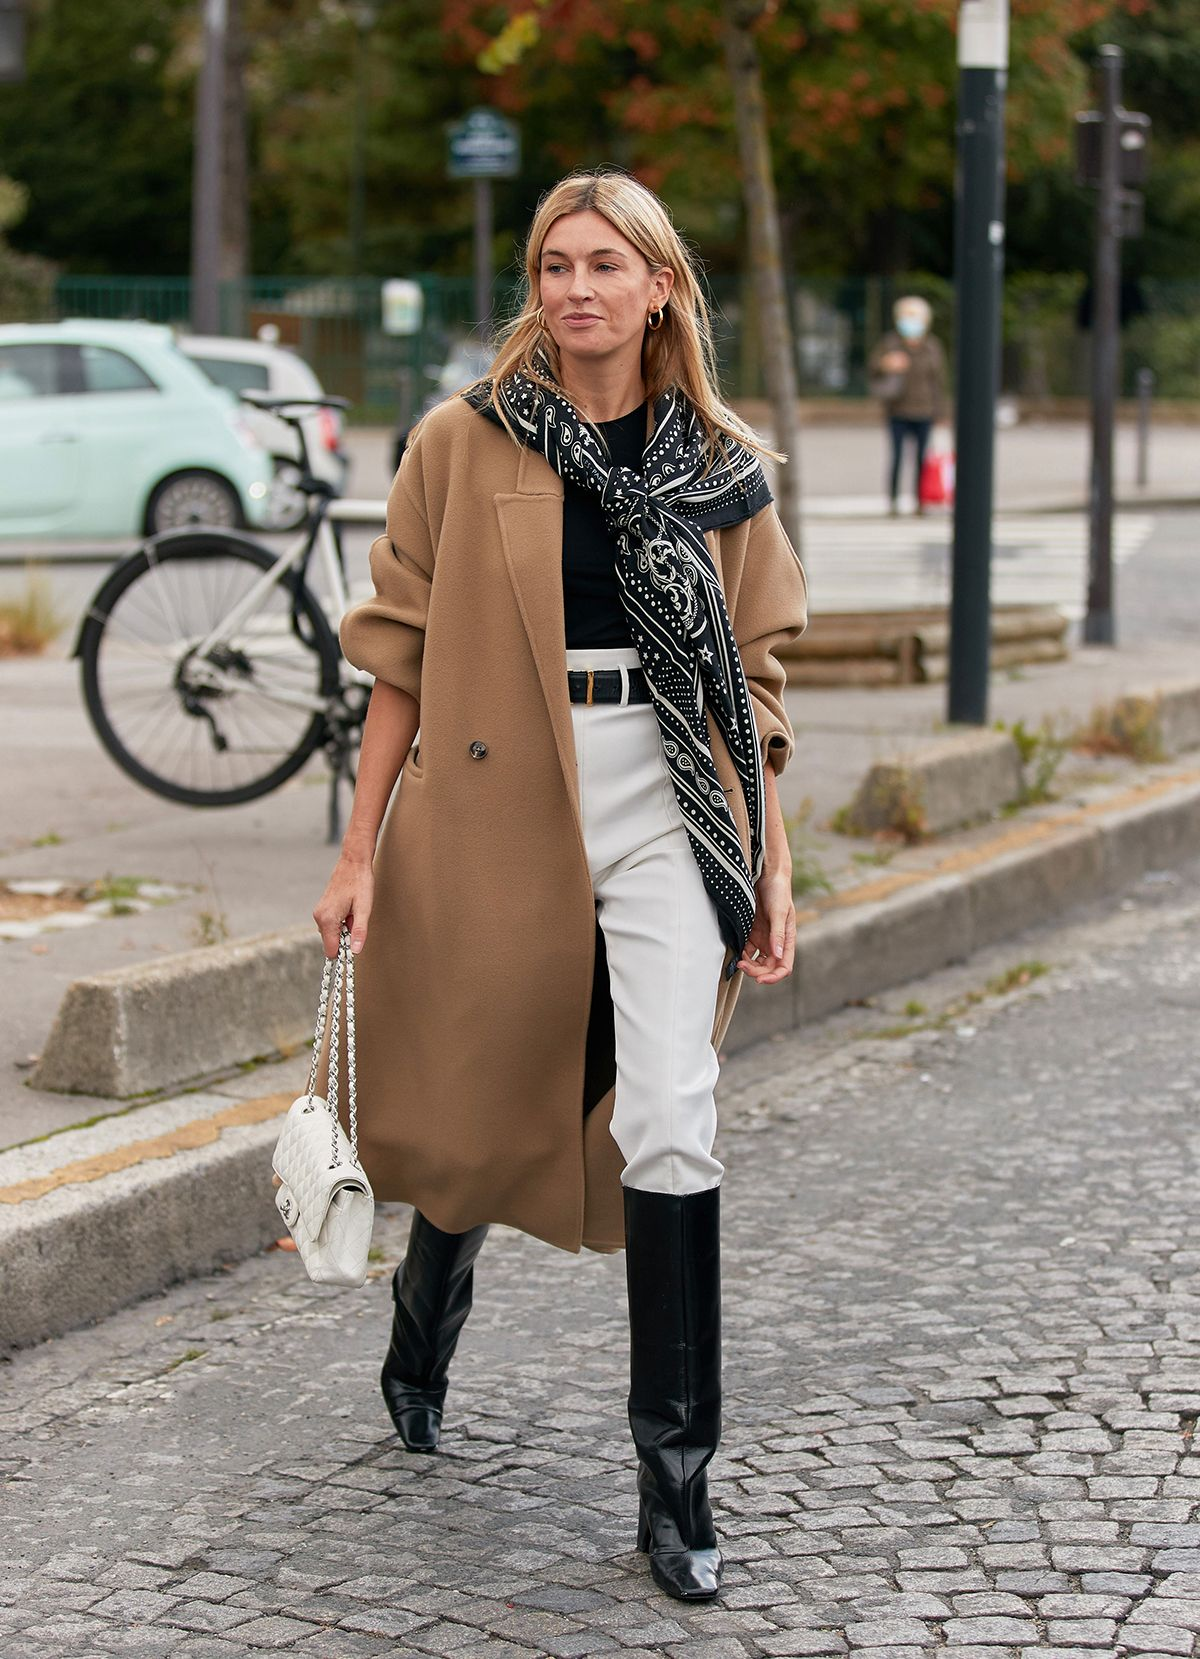 If You're Looking for a New Winter Coat—These Are the Best